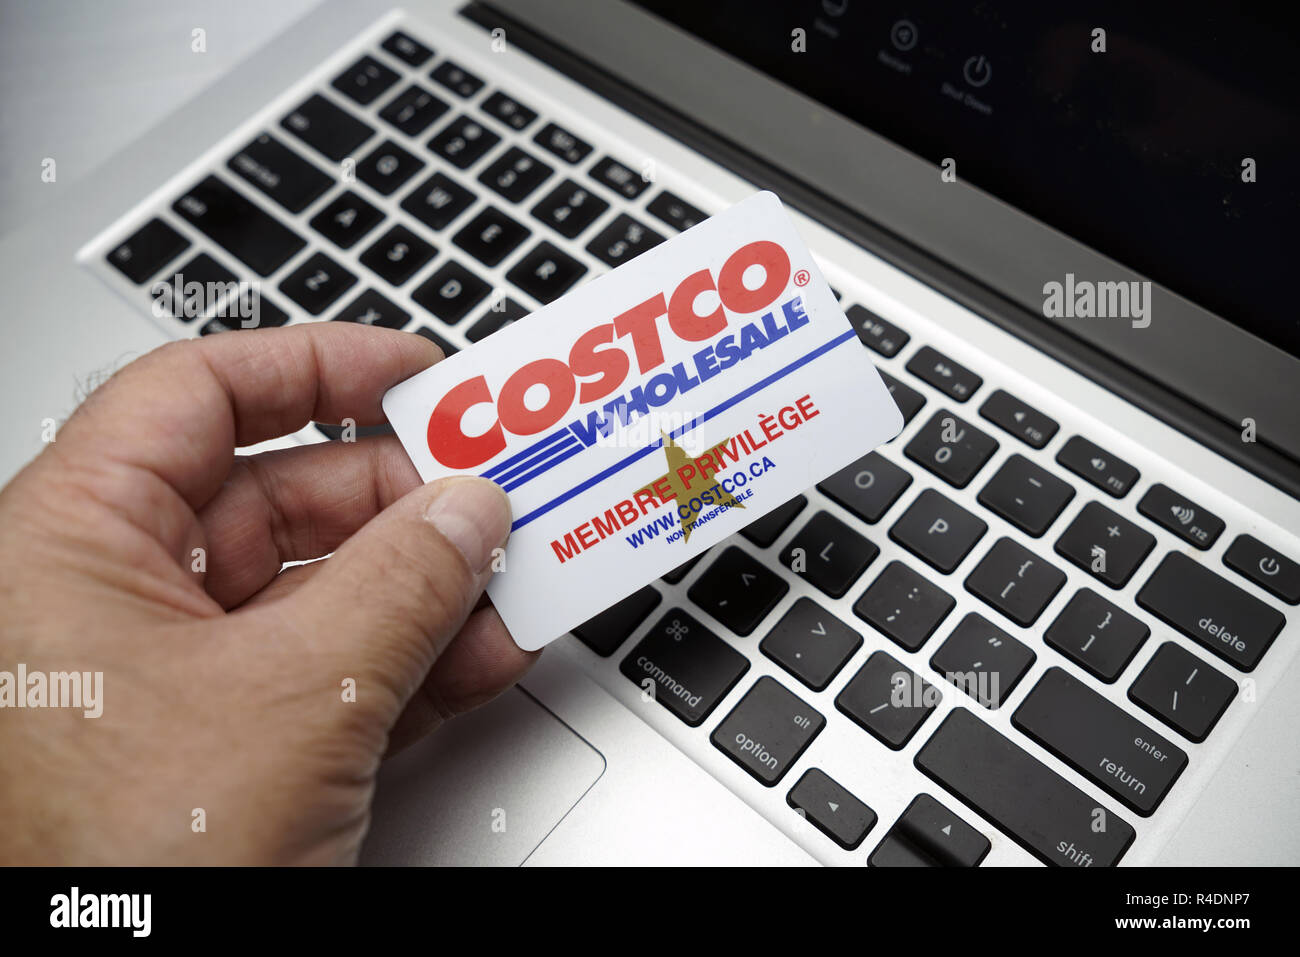 Costco Items Photos & Costco Items Images - Alamy